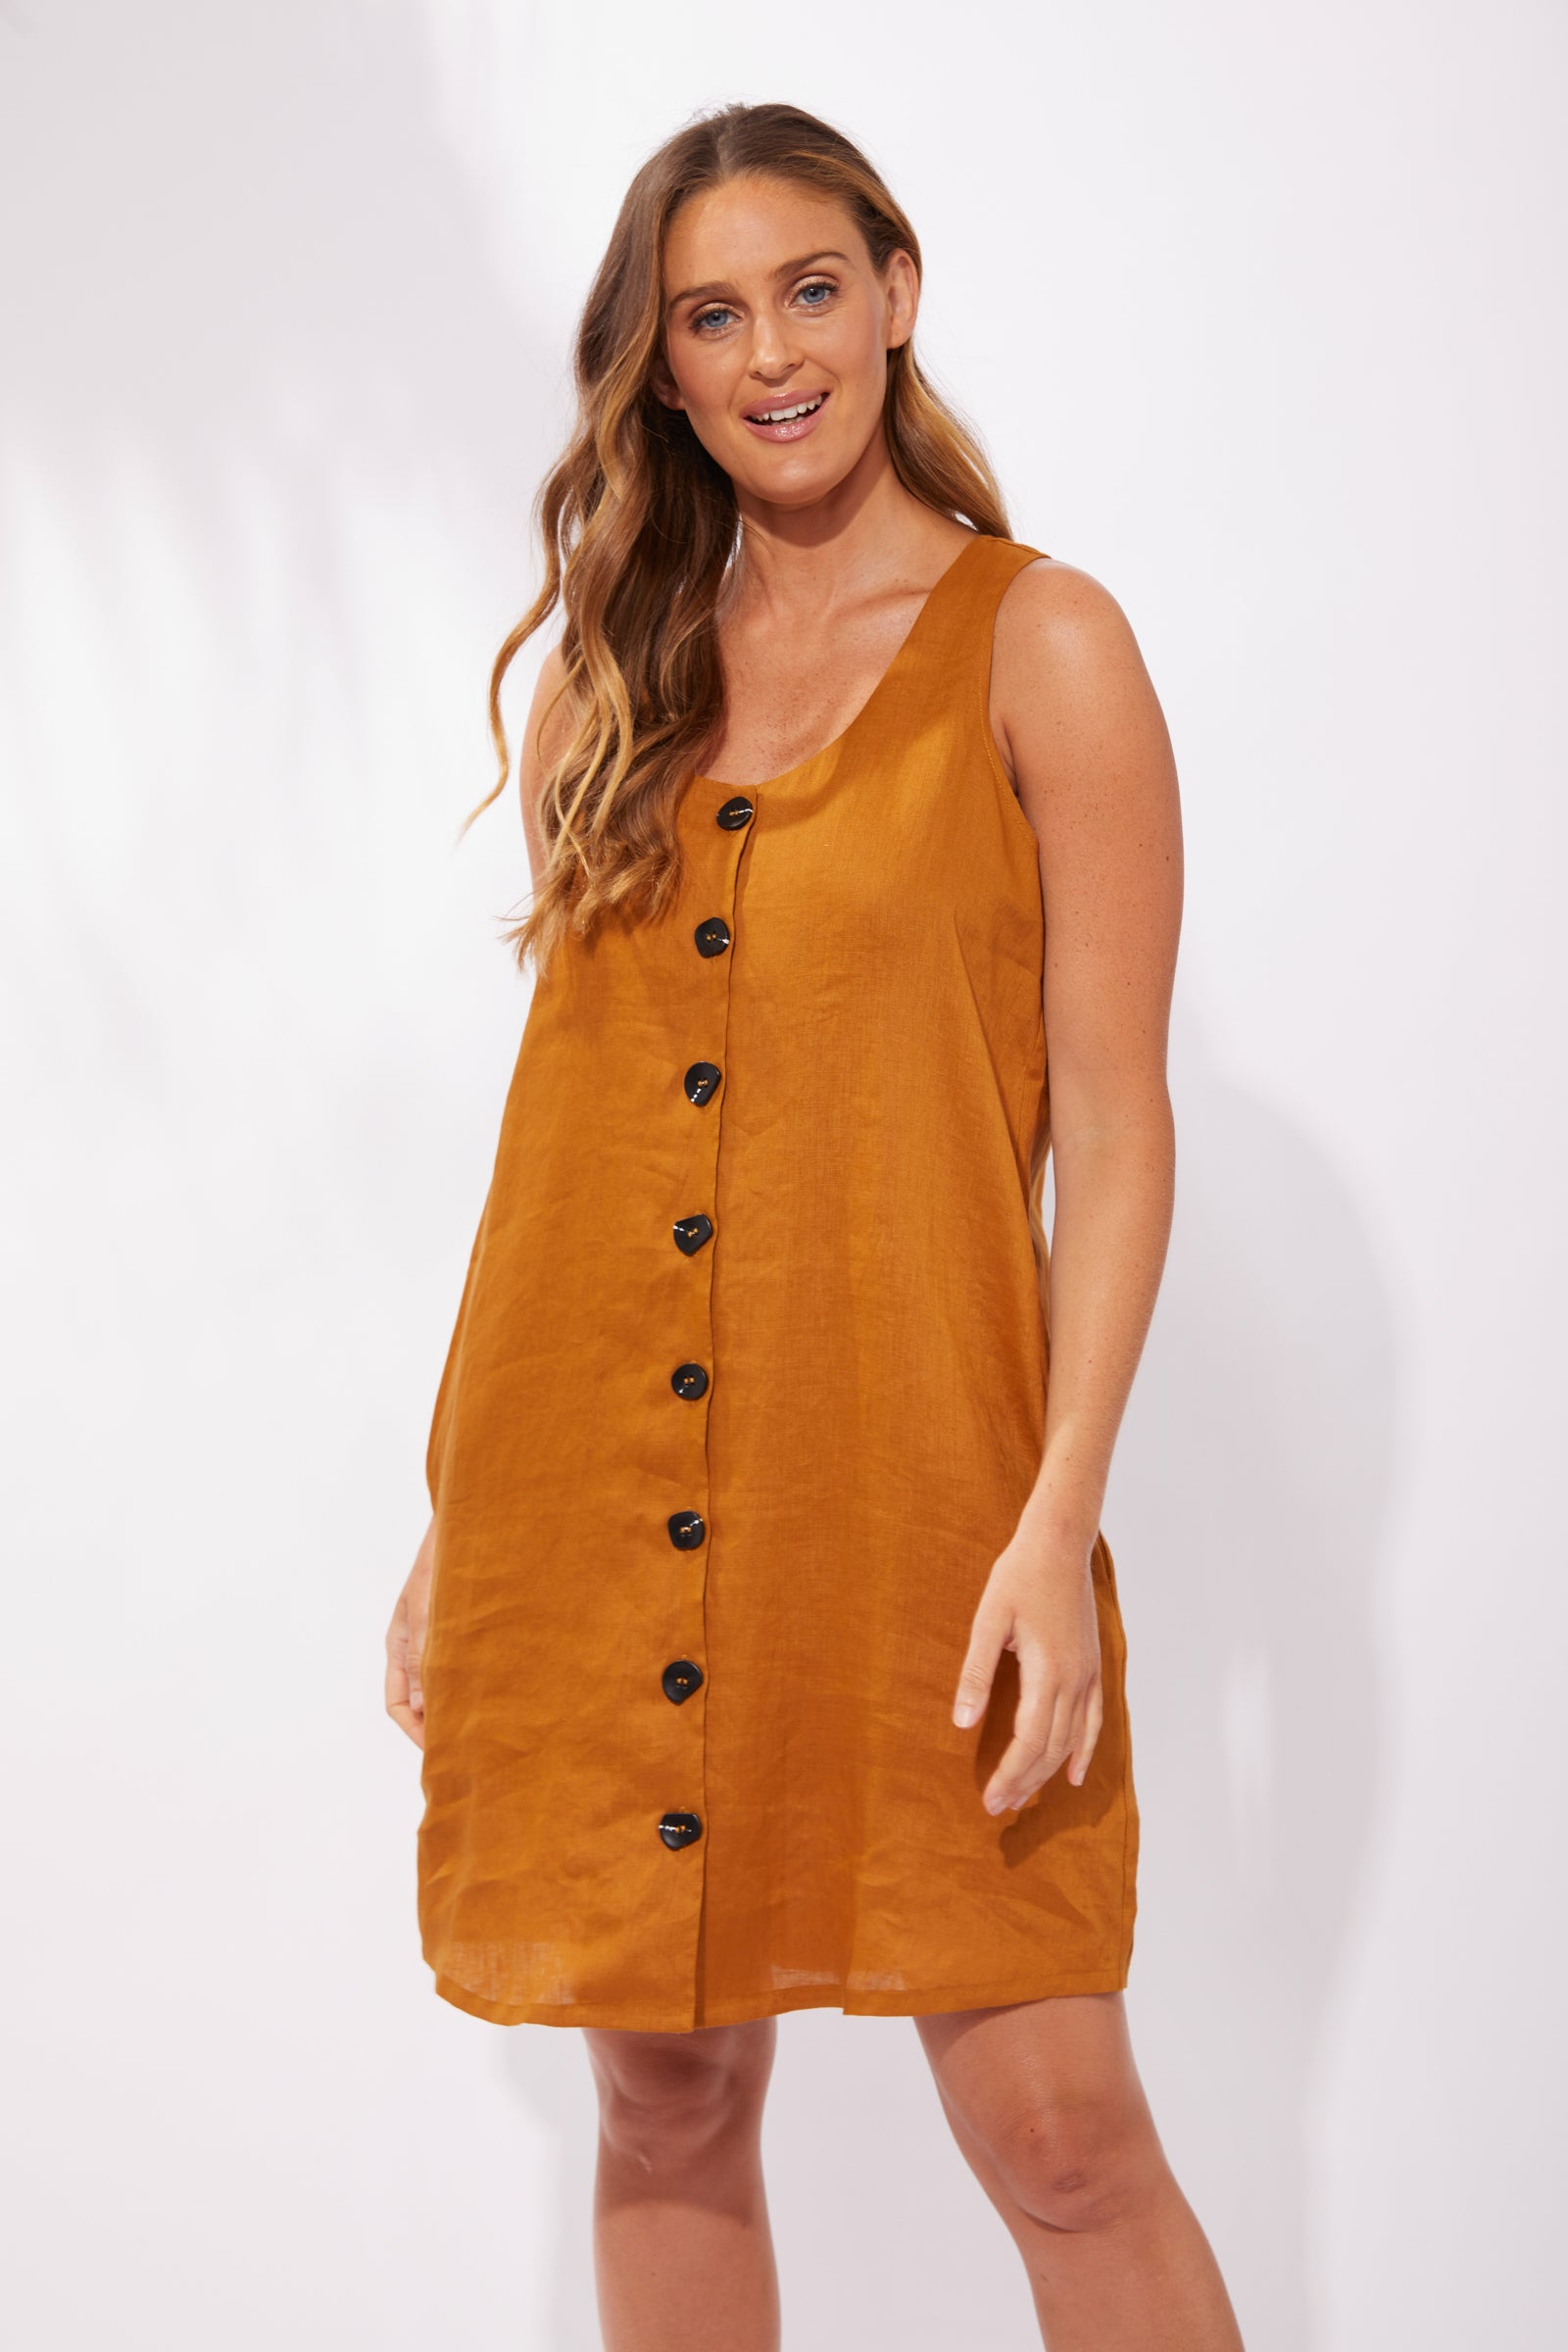 Majorca Tank Dress - Caramel - The Haven Co